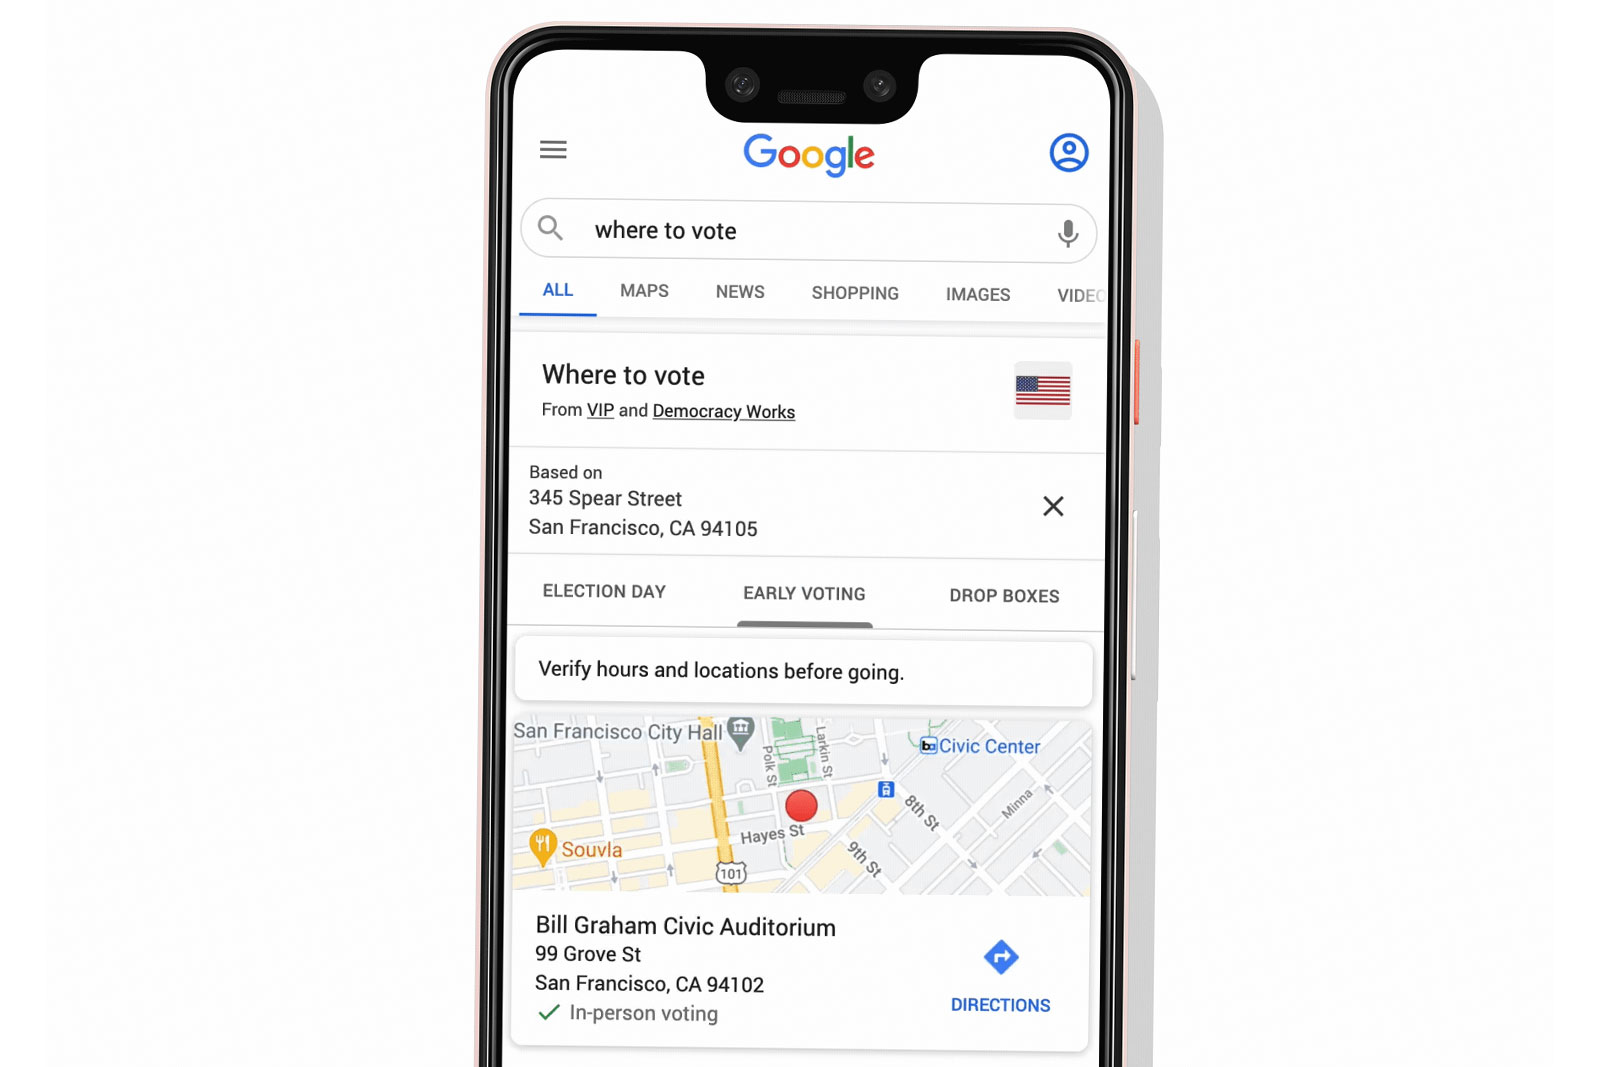 Google search now shows you where to vote or drop off your ballot